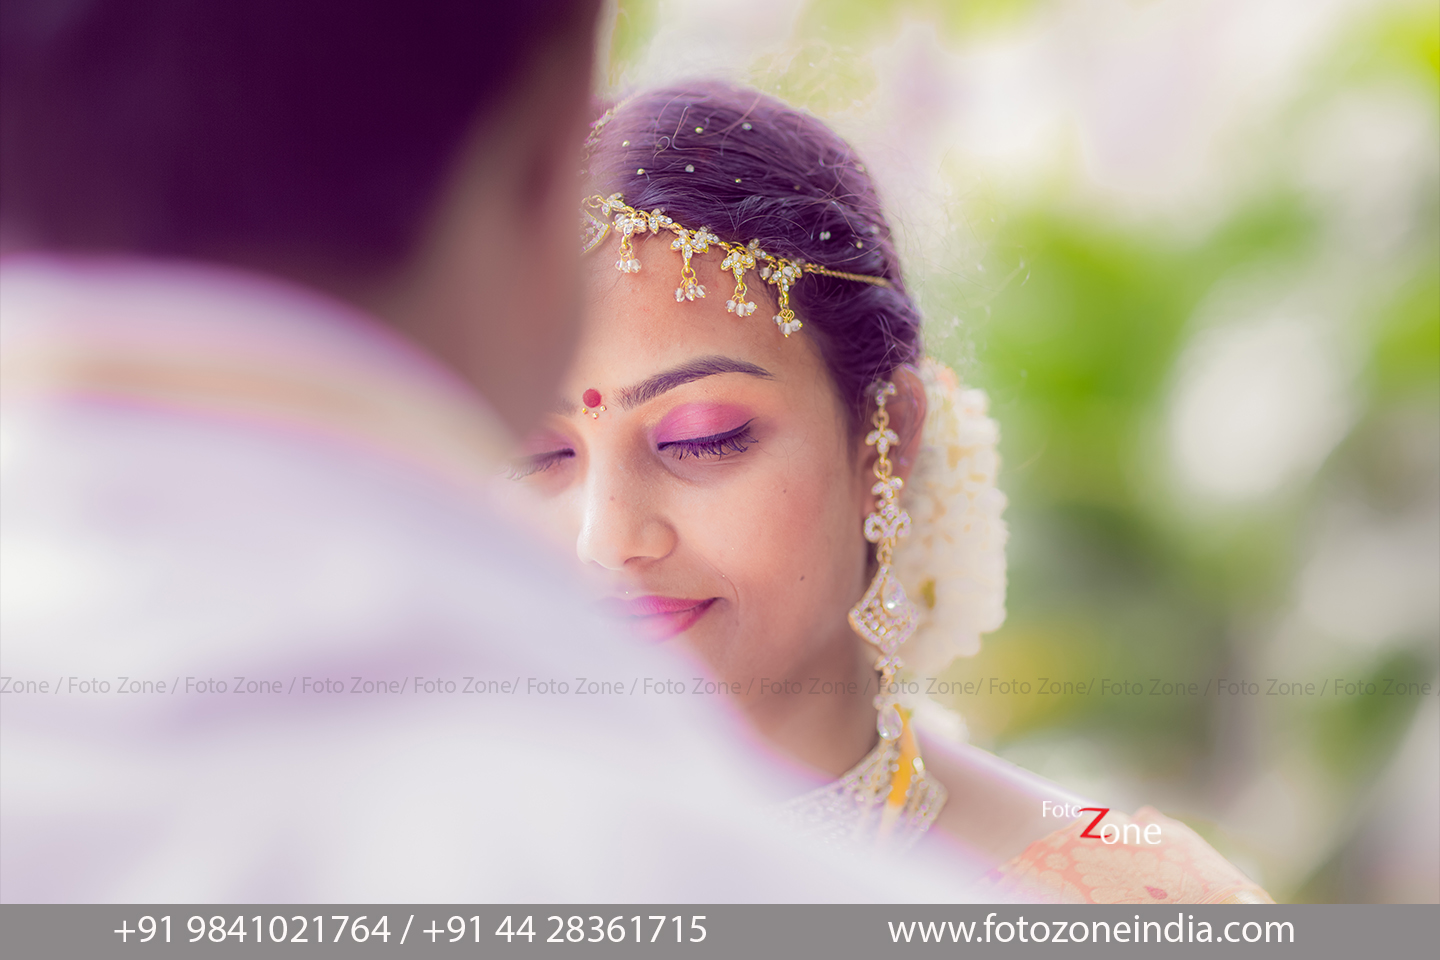 Candid Wedding Photography Services